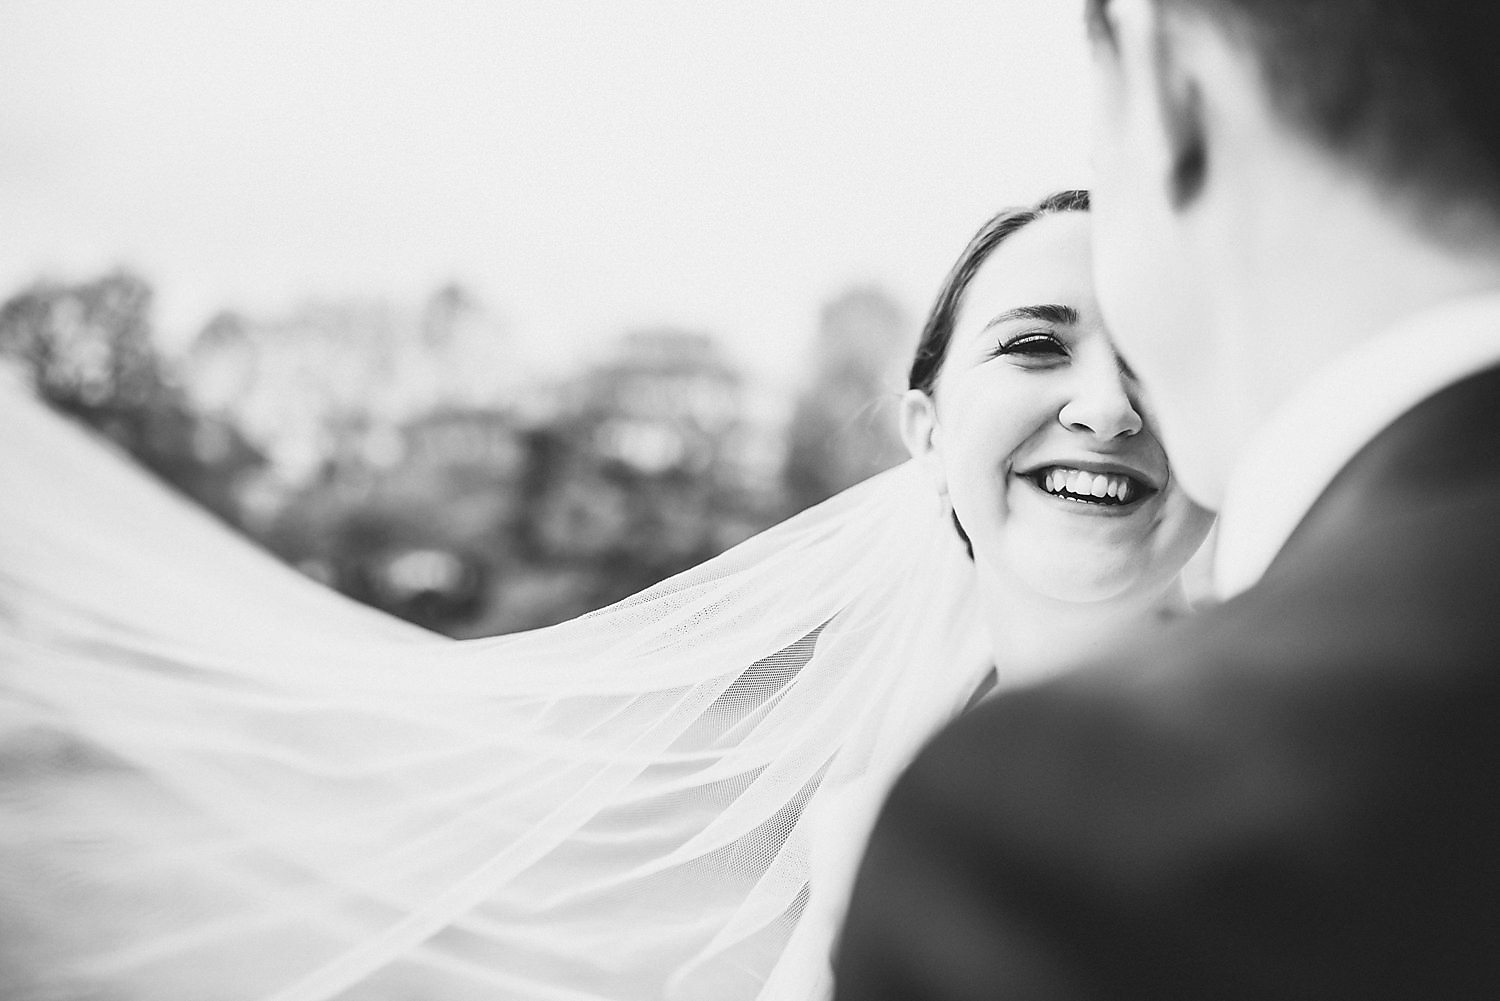 Black and white couple's portrait with bride's veil billowing to one side